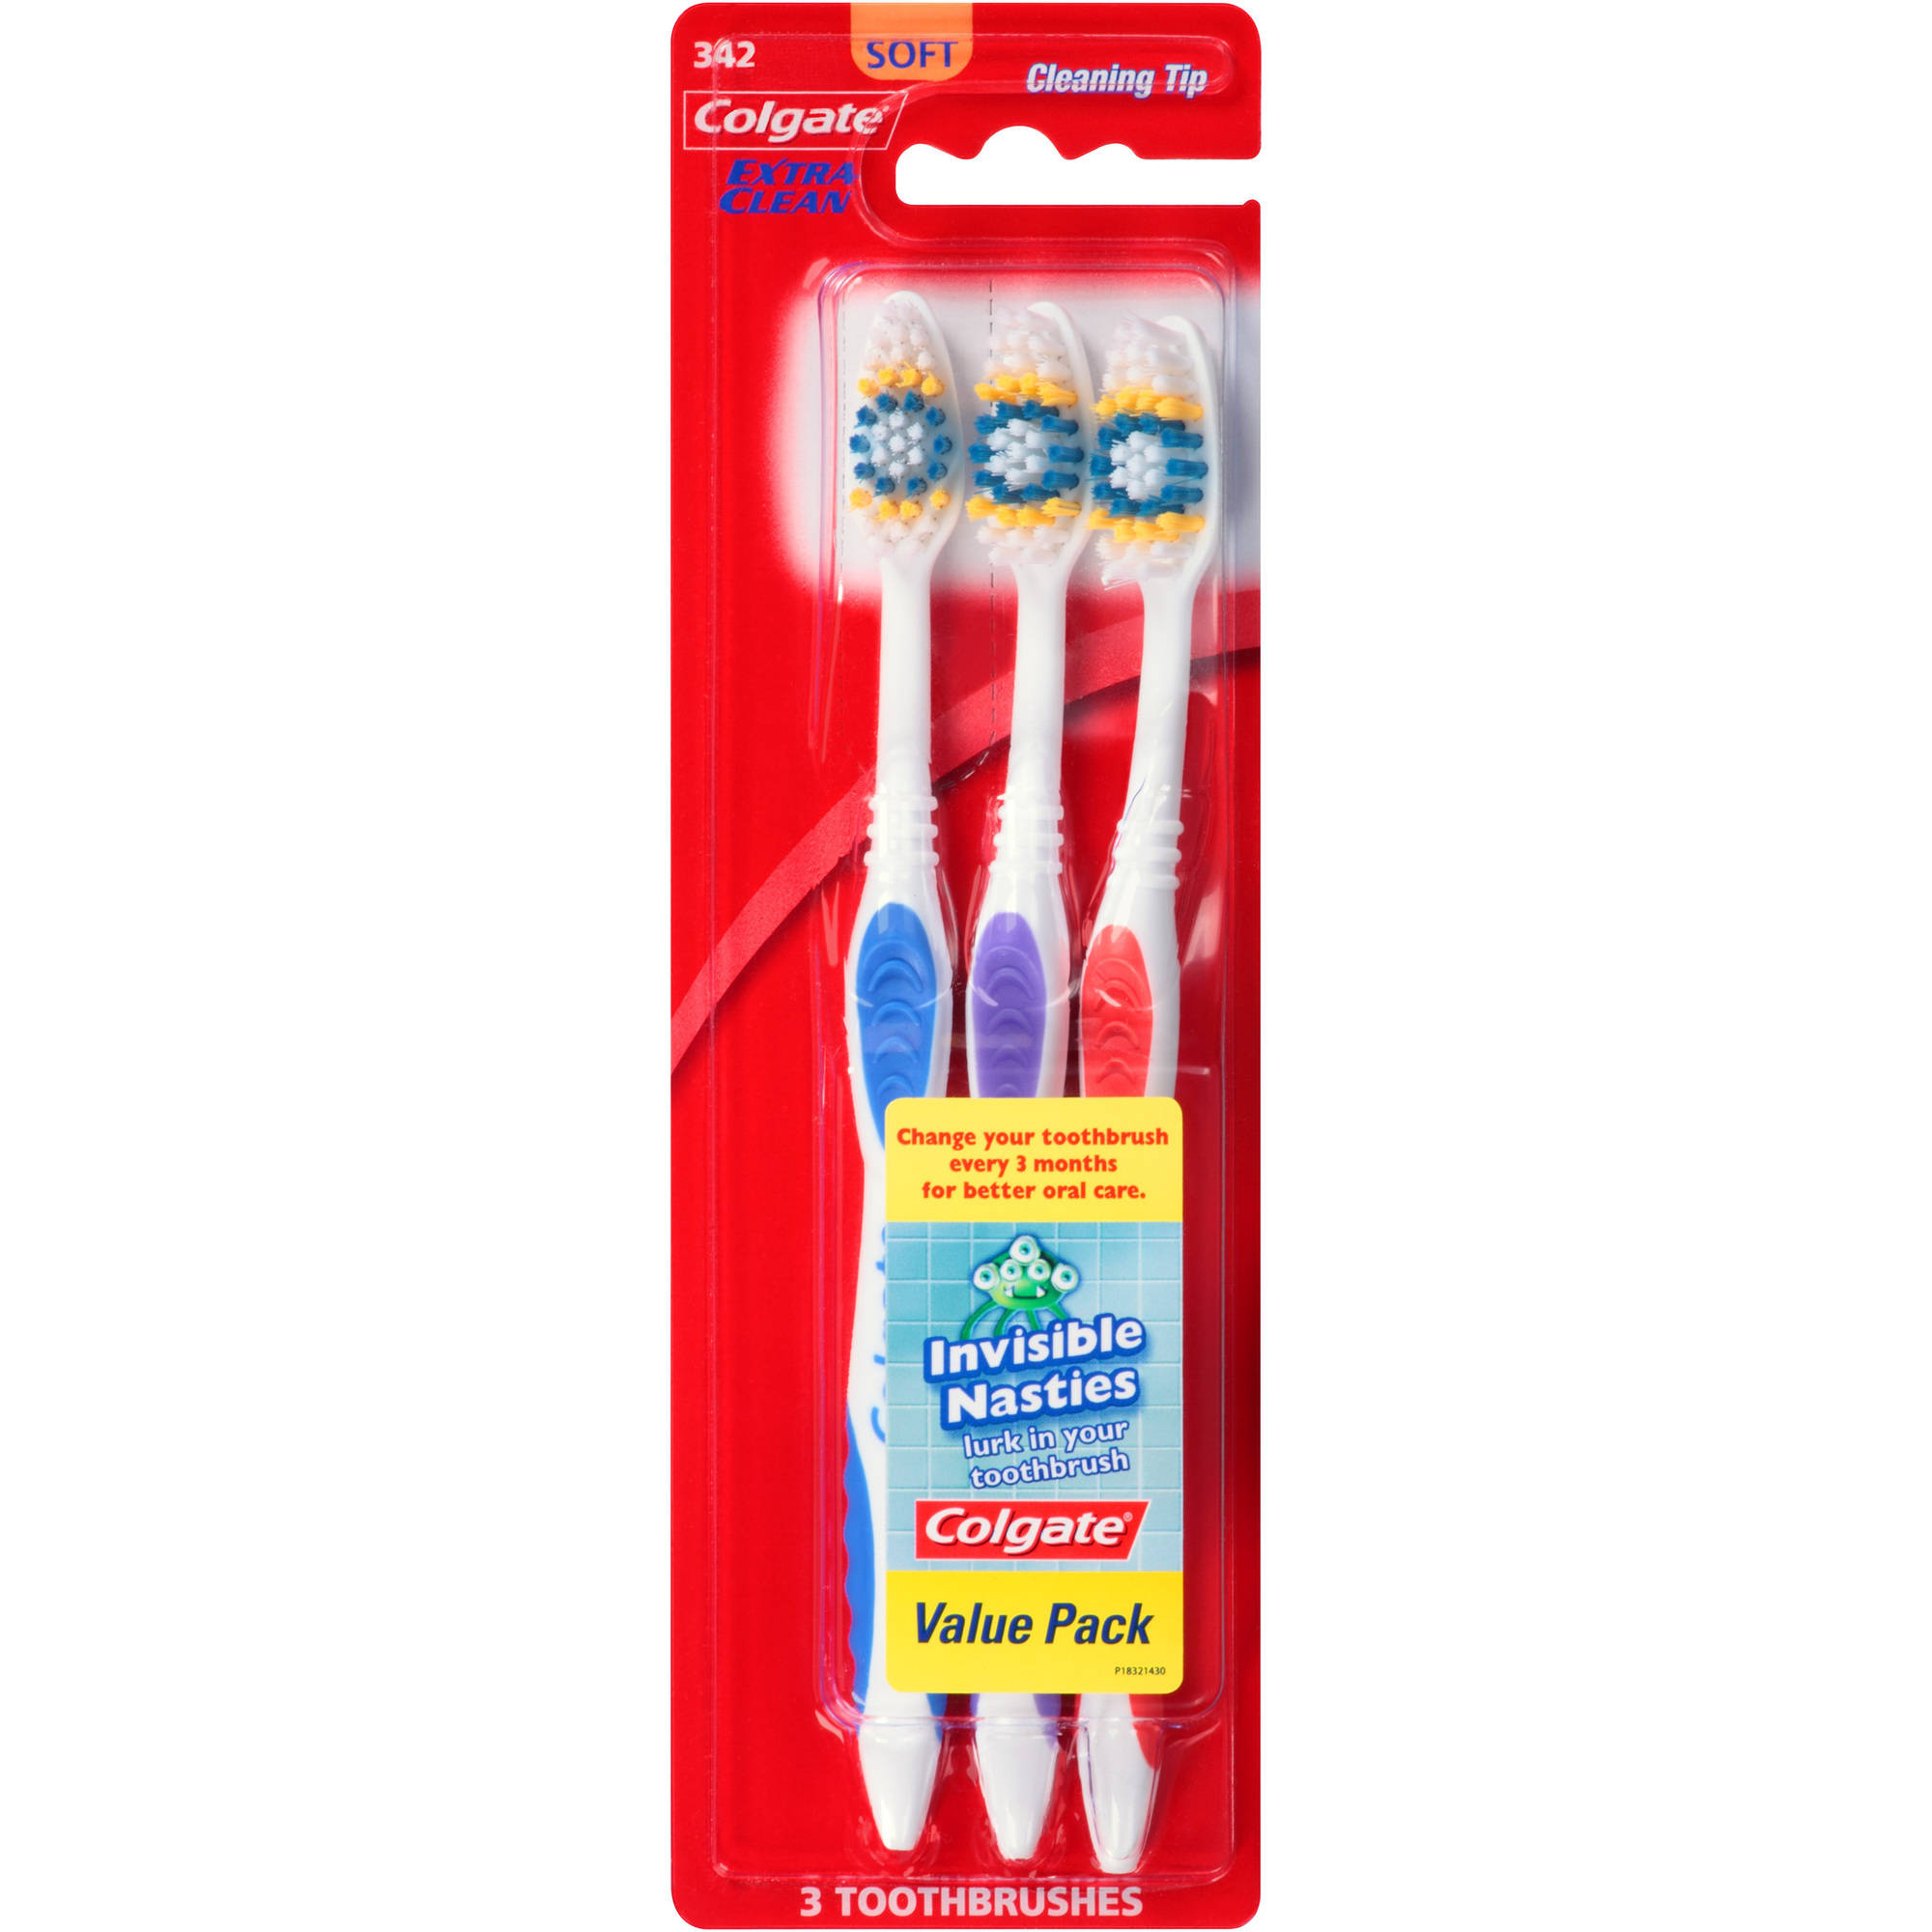 Colgate Extra Clean Soft Toothbrushes, 3 count